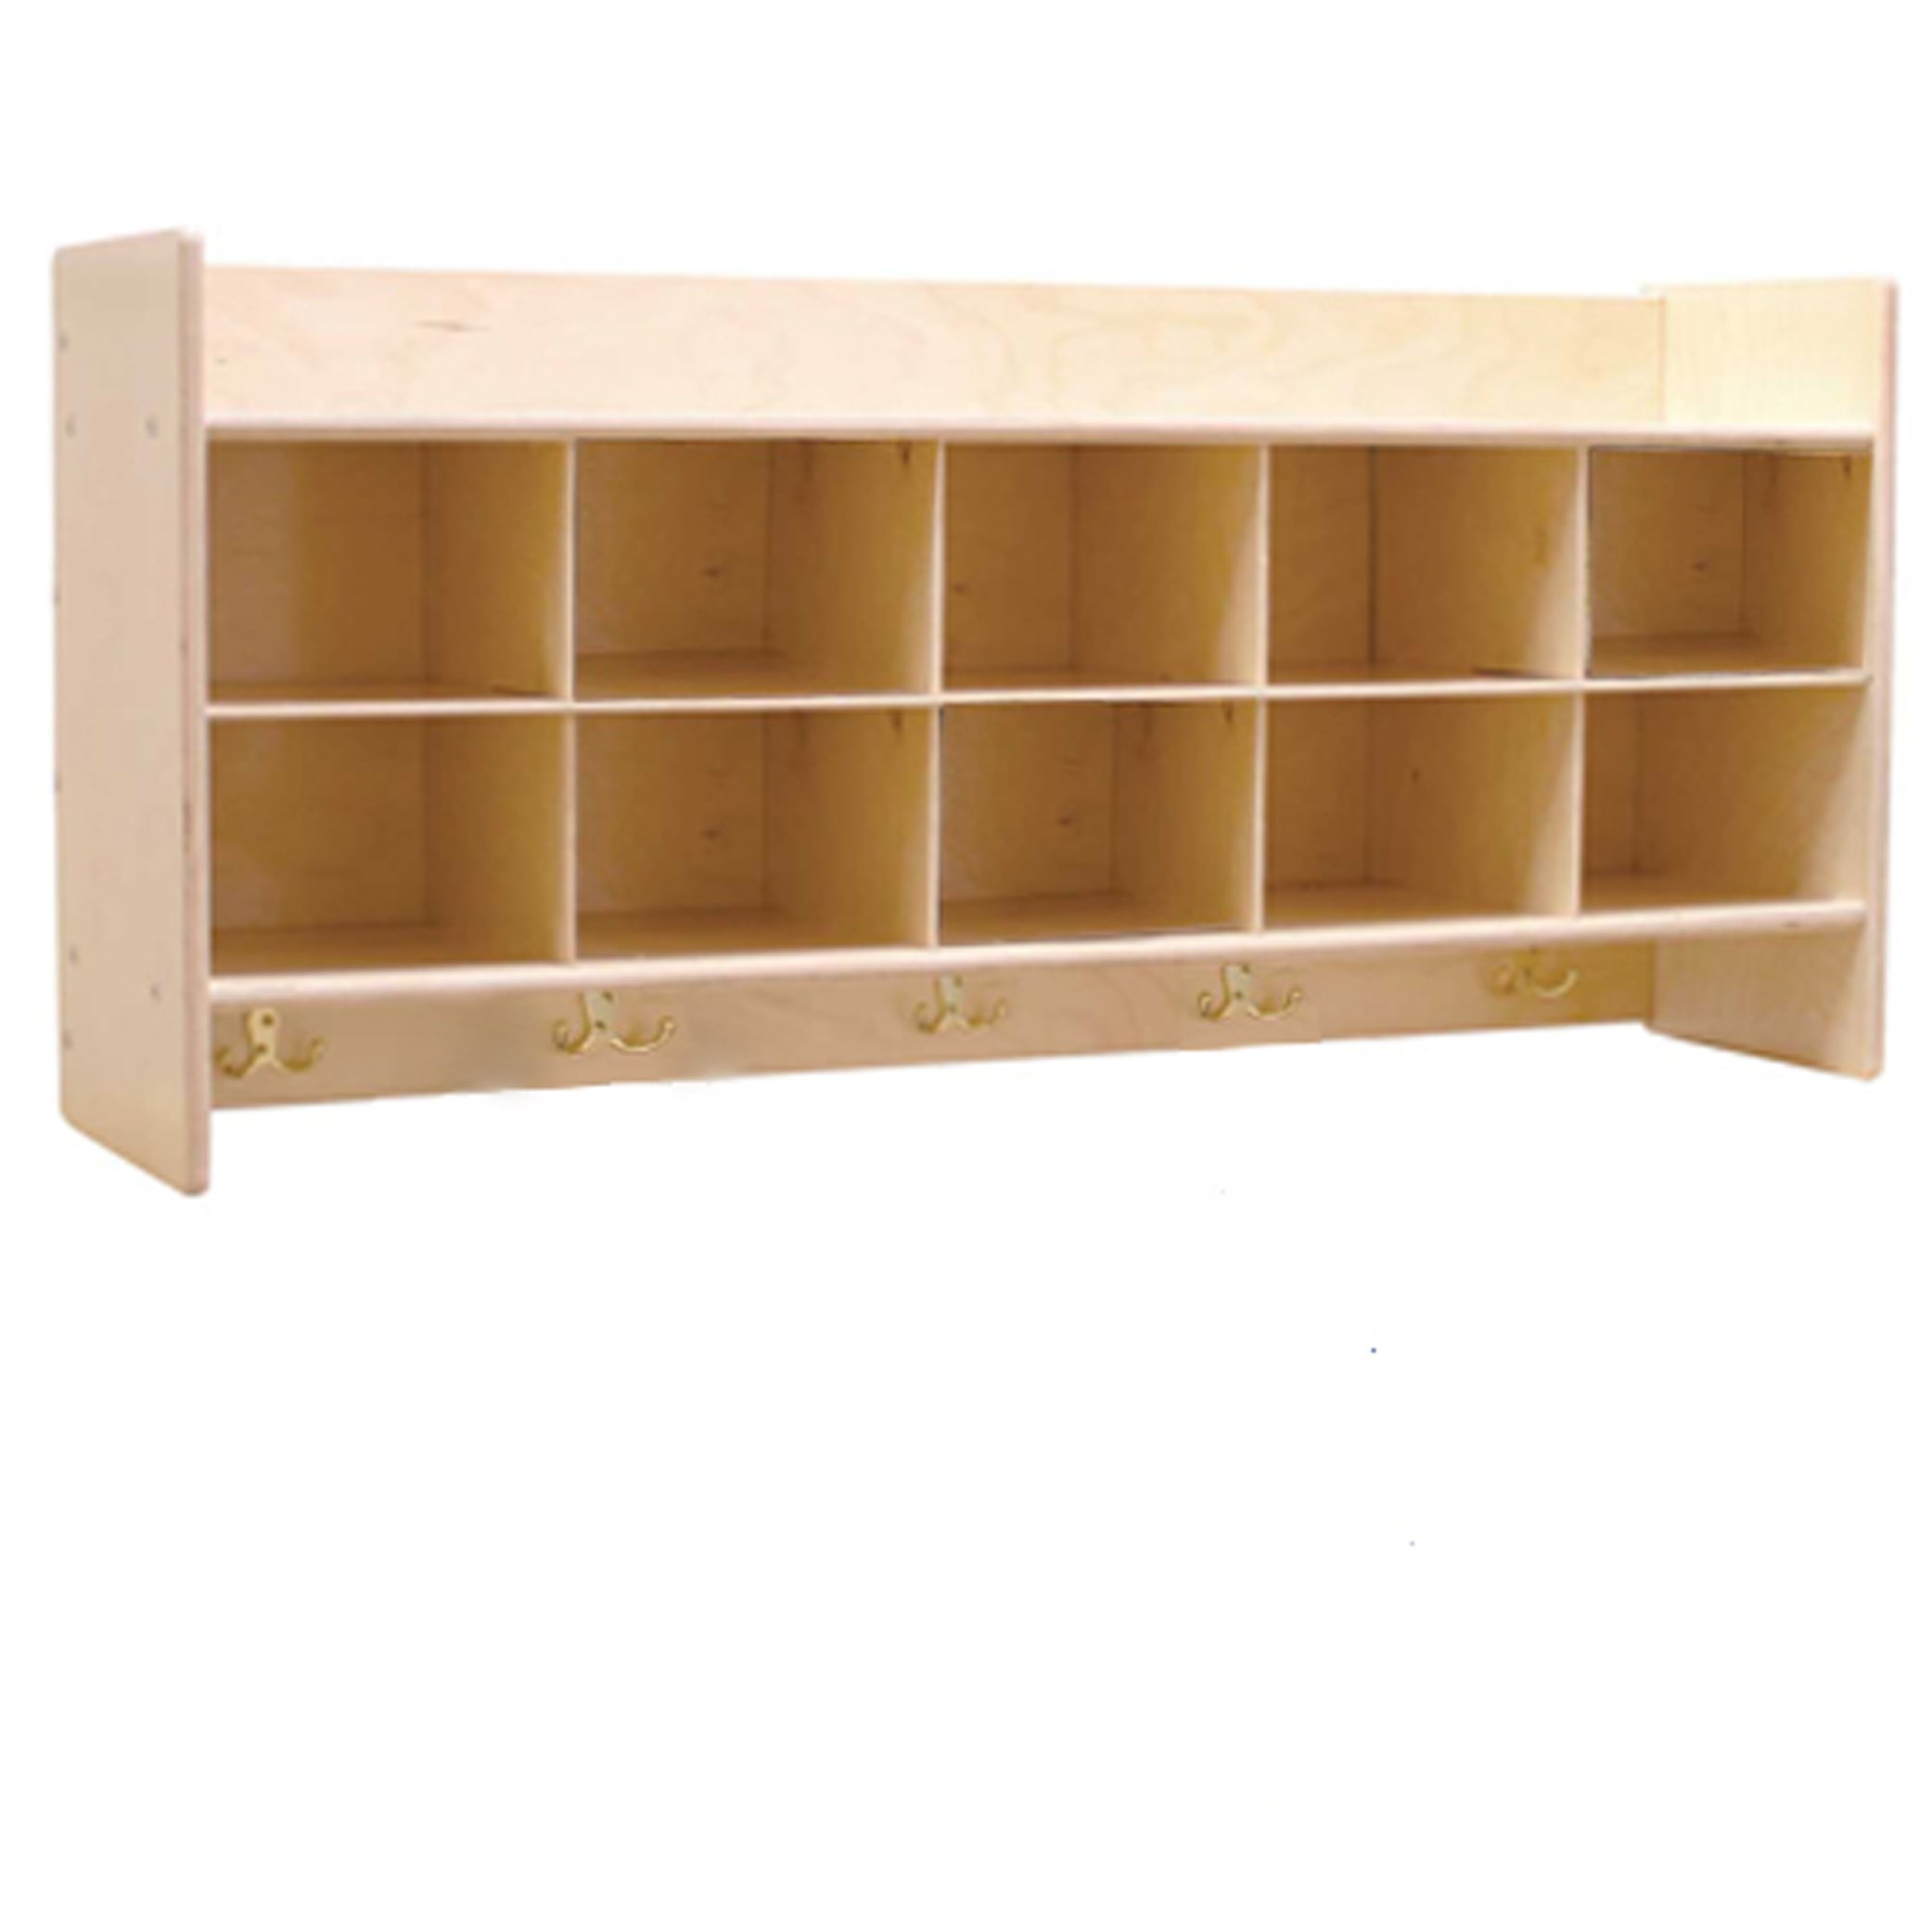 Contender C51409 Wall Locker & Cubby Storage without Trays